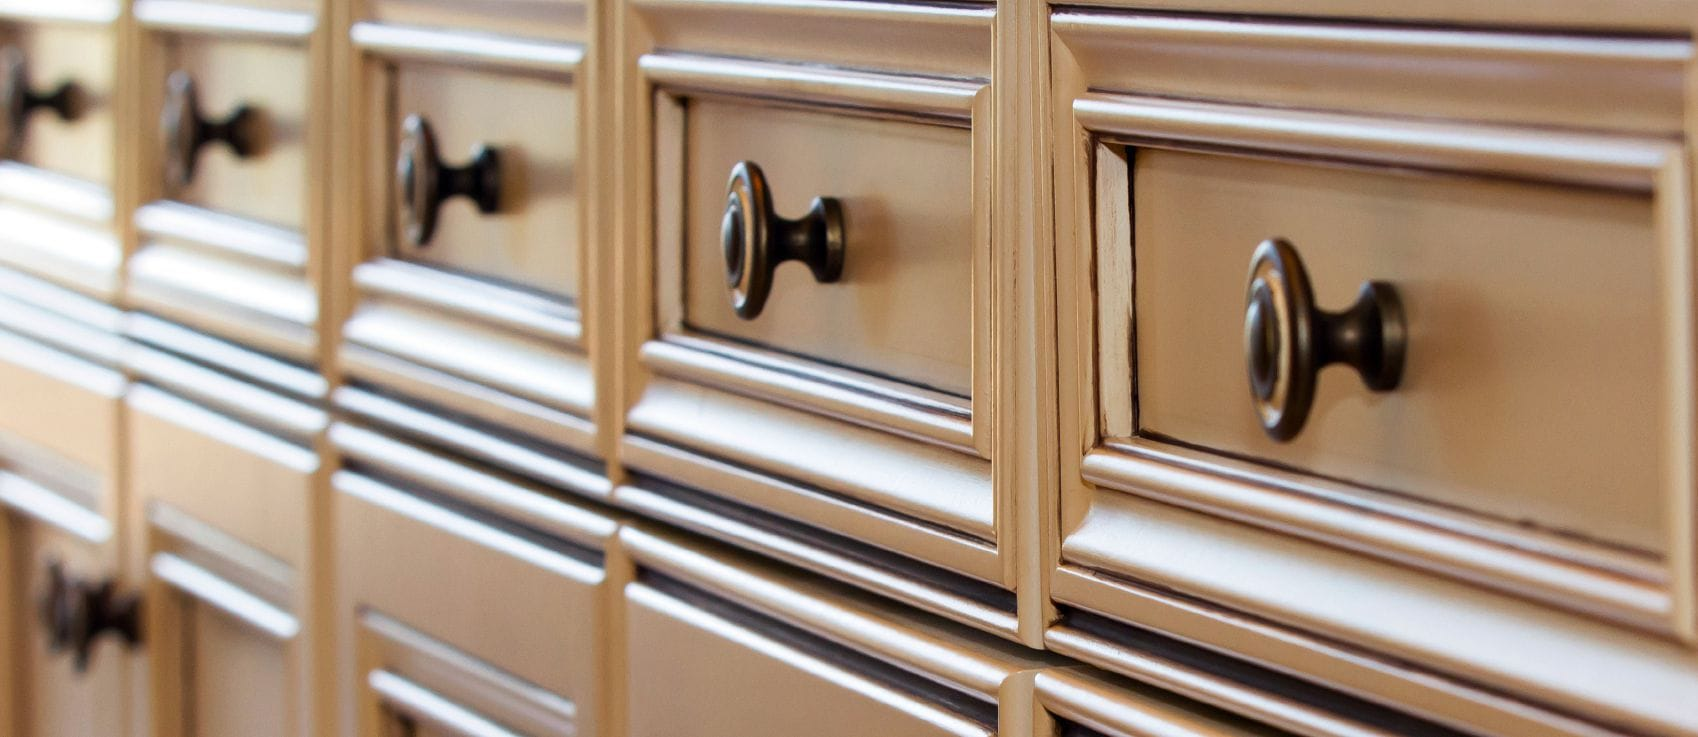 spotlight on cabinet knobs pulls and handles kitchen cabinet drawer pulls Row of kitchen cabinet drawer fronts